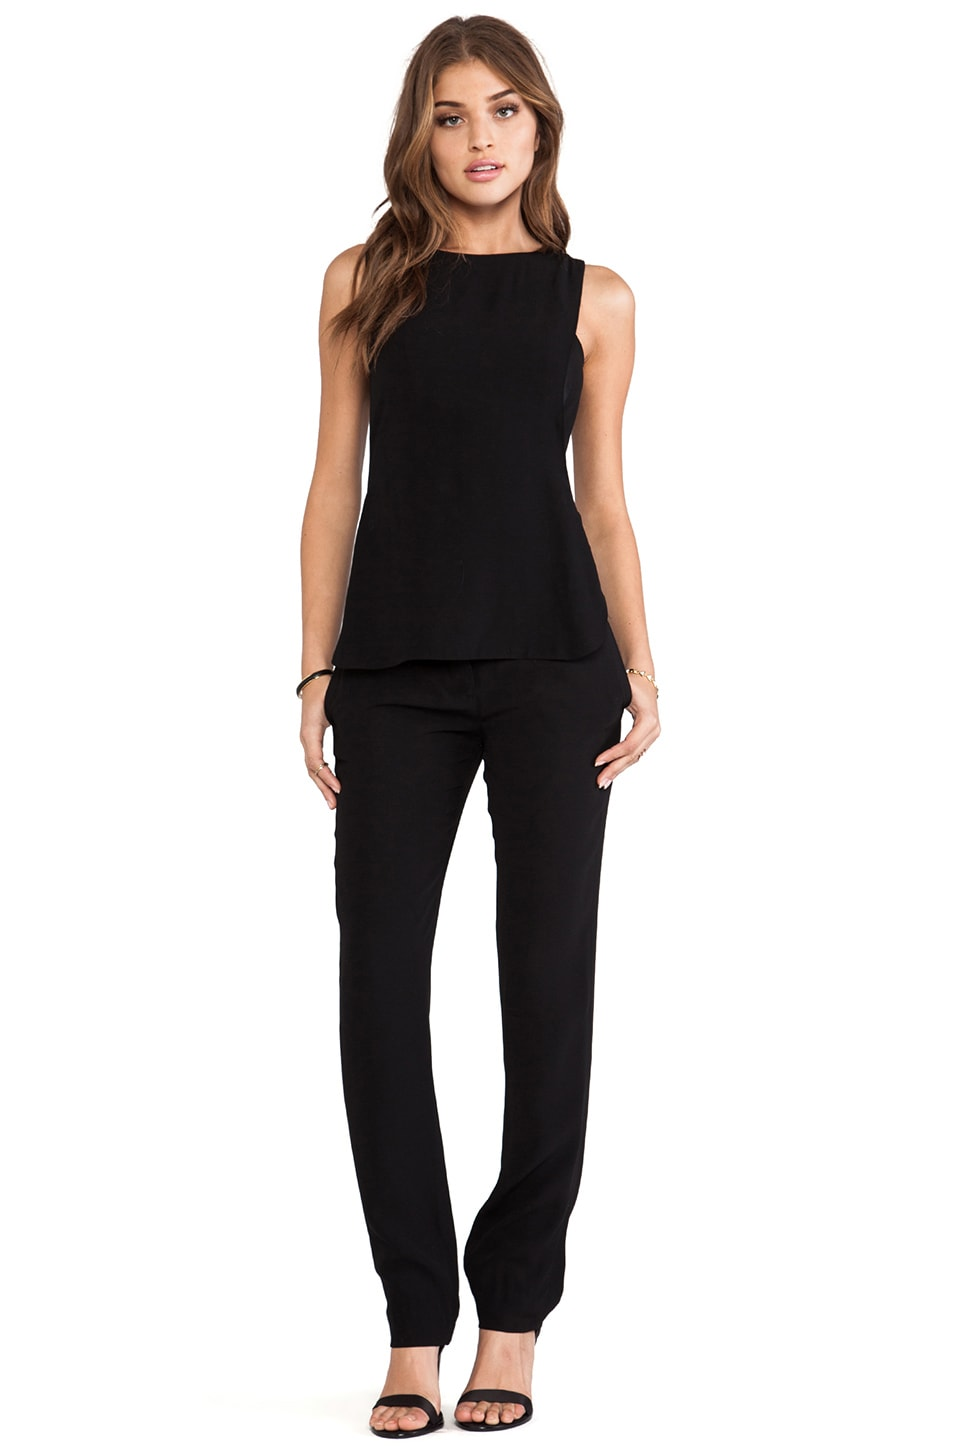 A.L.C. Landom Jumpsuit in Black